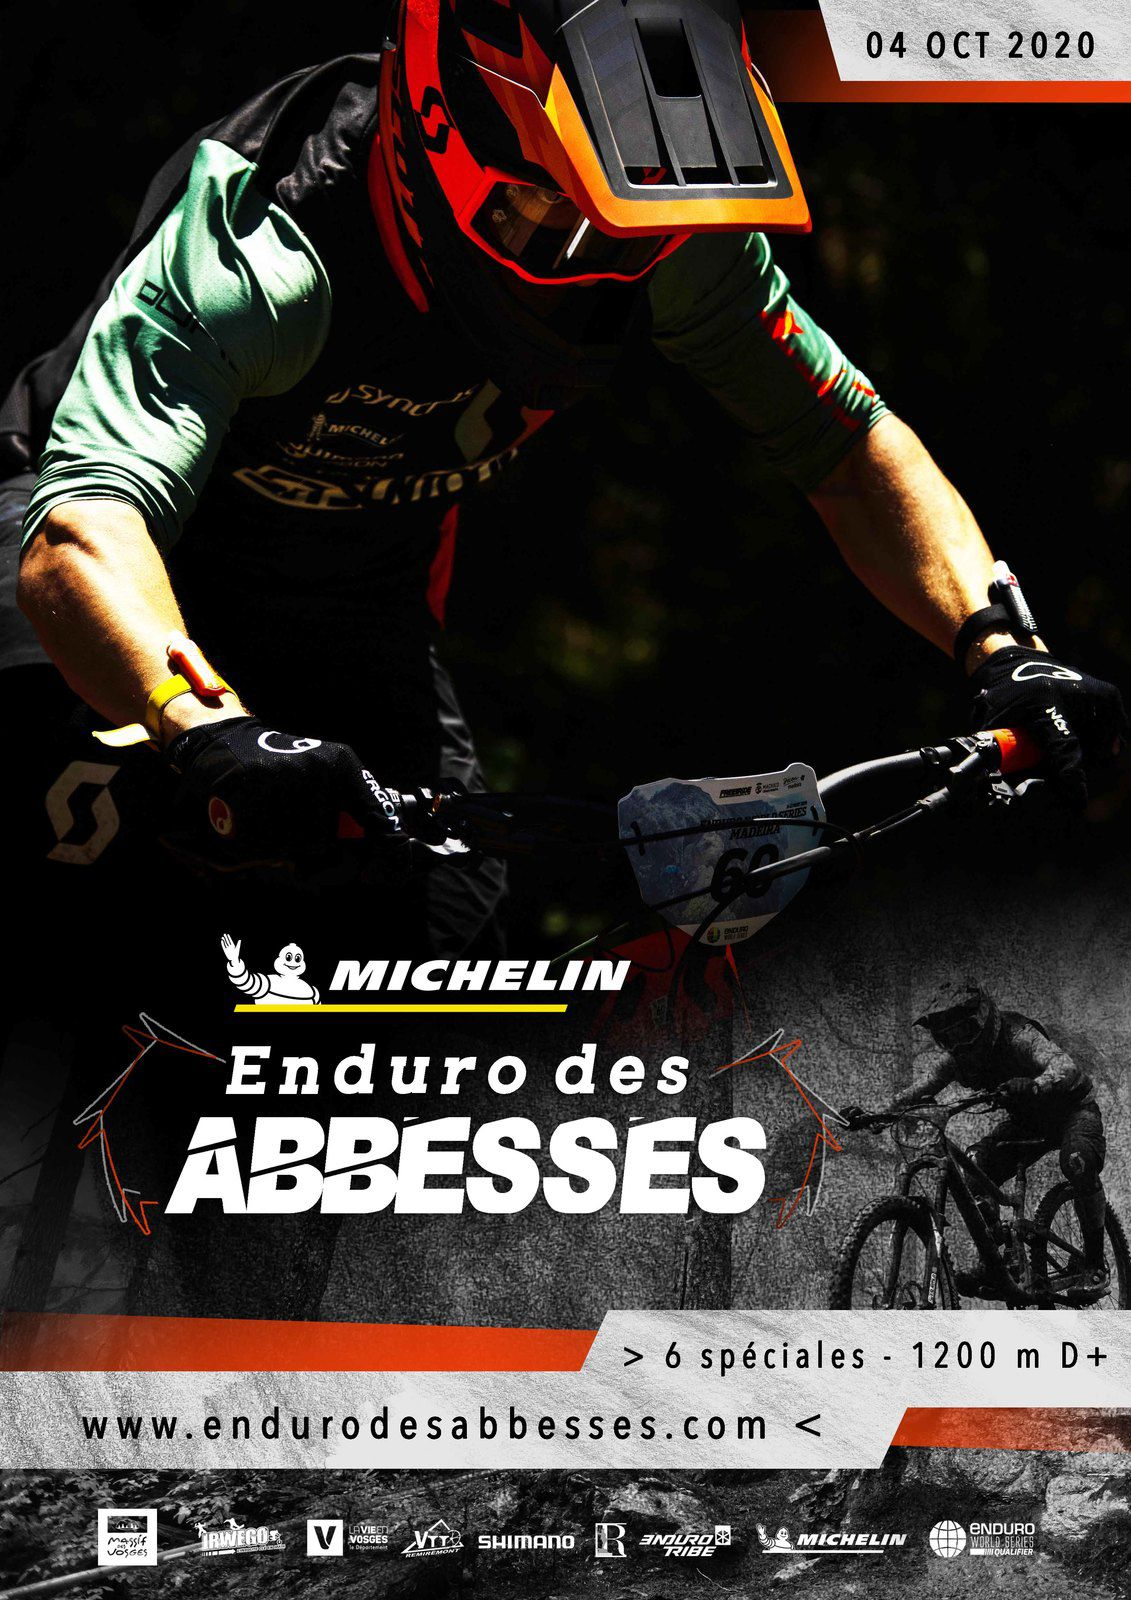 ENDURO DES ABBESSES 2020 !